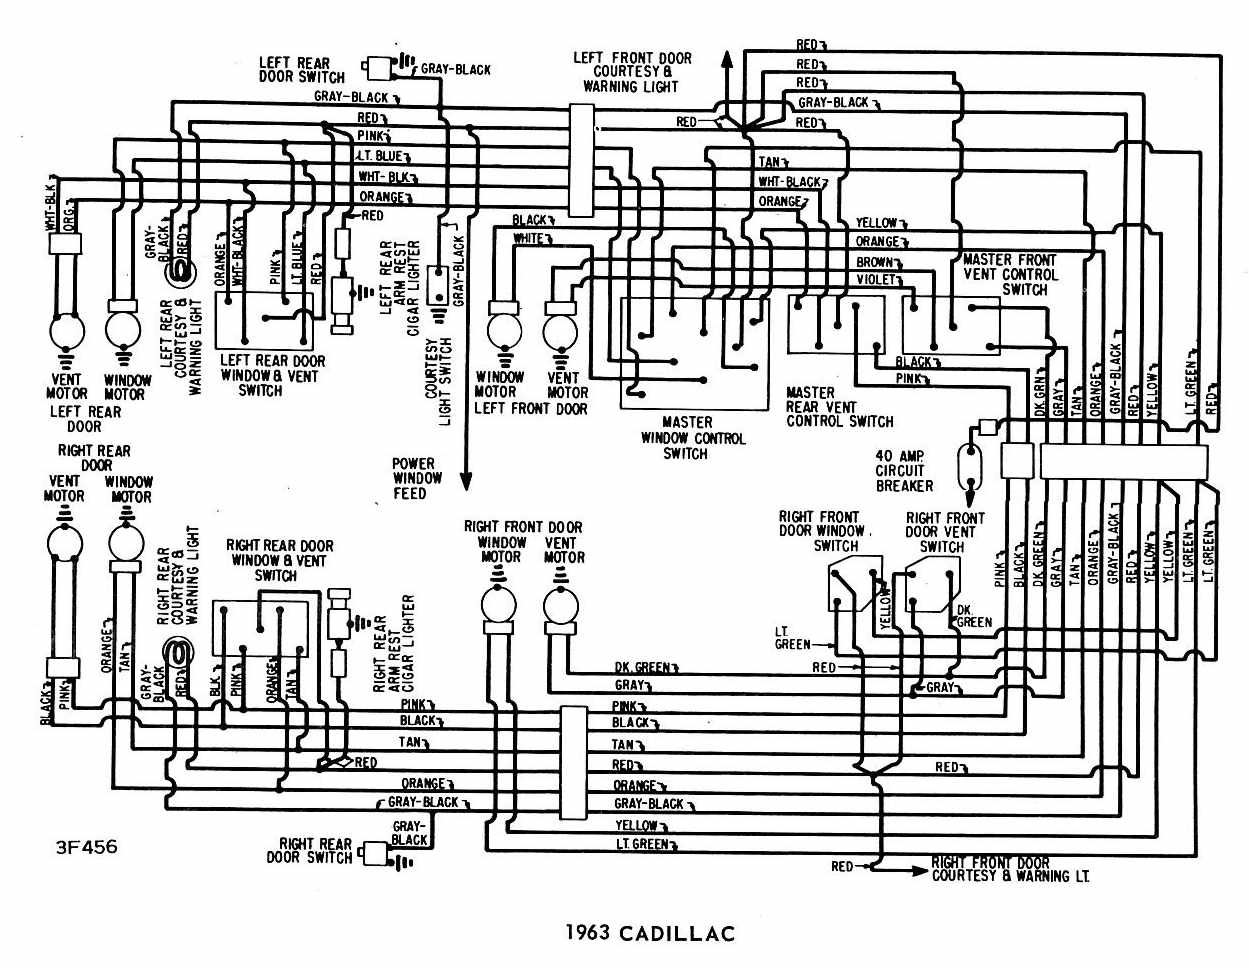 Cadillac+1963+Windows+Wiring+Diagram cadillac 1963 windows wiring diagram all about wiring diagrams Chevy Truck Wiring Diagram at bayanpartner.co